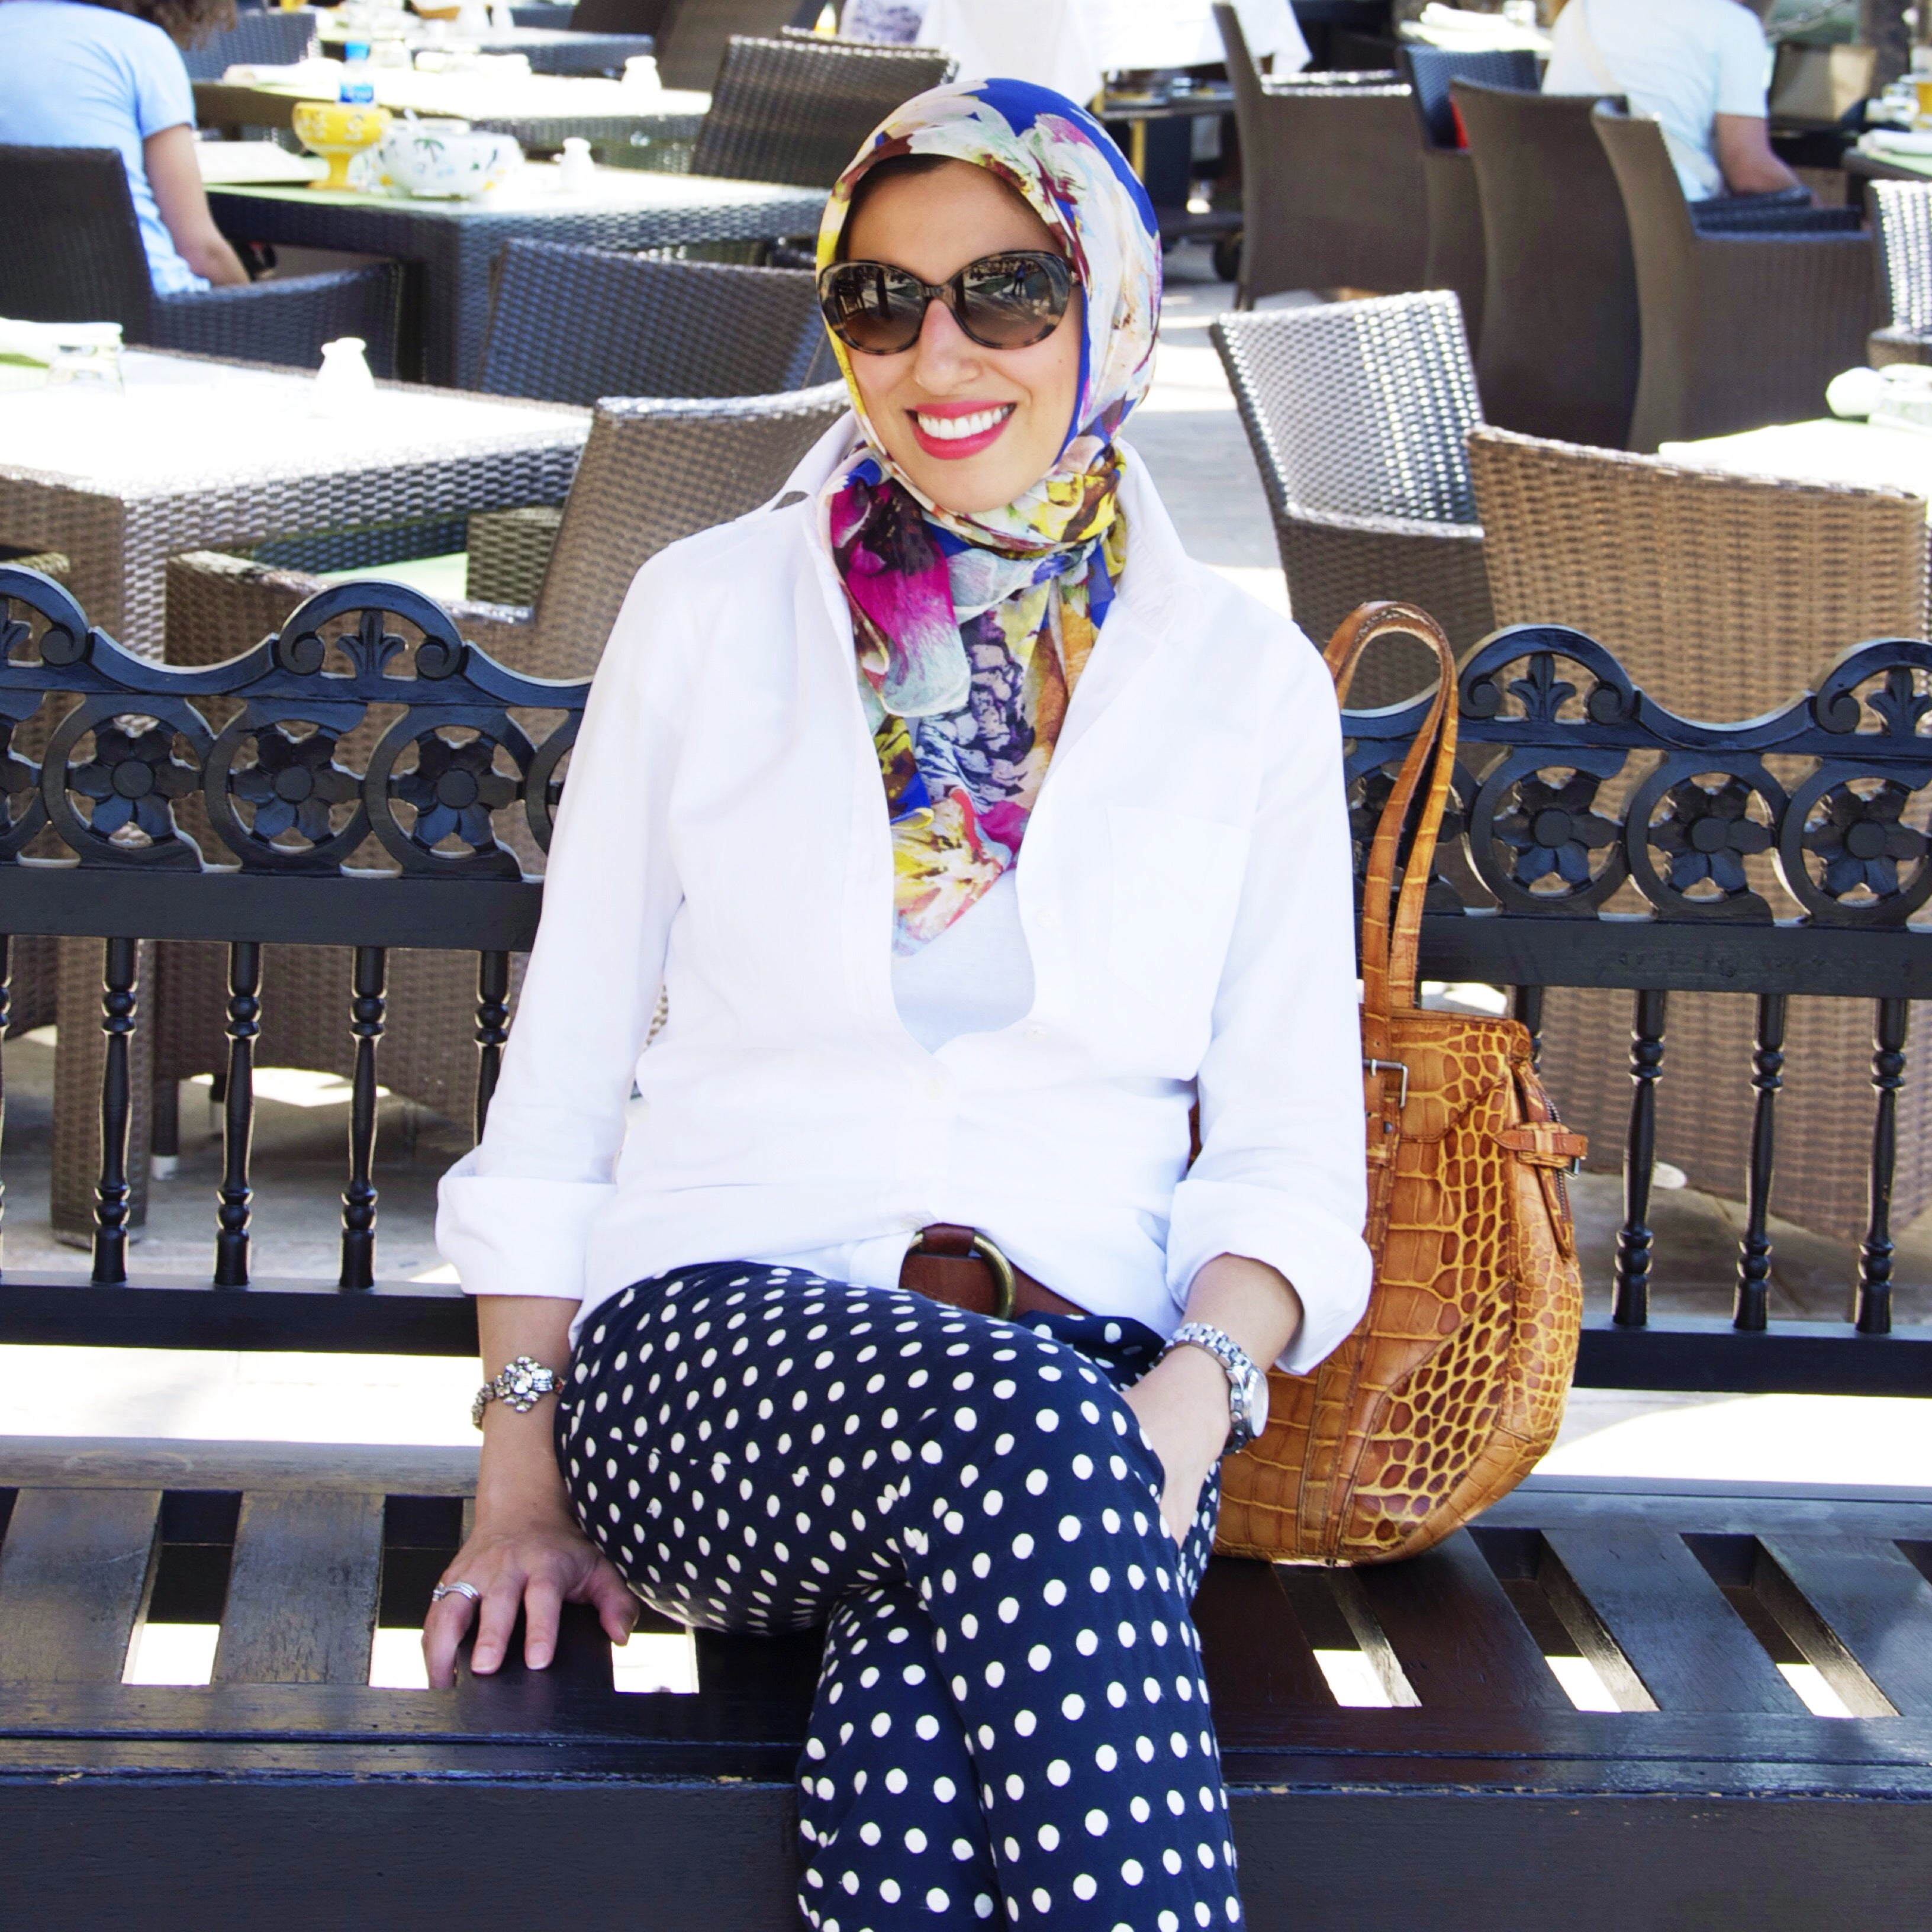 college park muslim singles College park, maryland, united states seeking: male 38 - 50 for marriage wear a hijab: yes fun loving, exciting, intelligent woman who puts allah first in all my endeavors i am an energetic, patient, giving woman who enjoys being active.